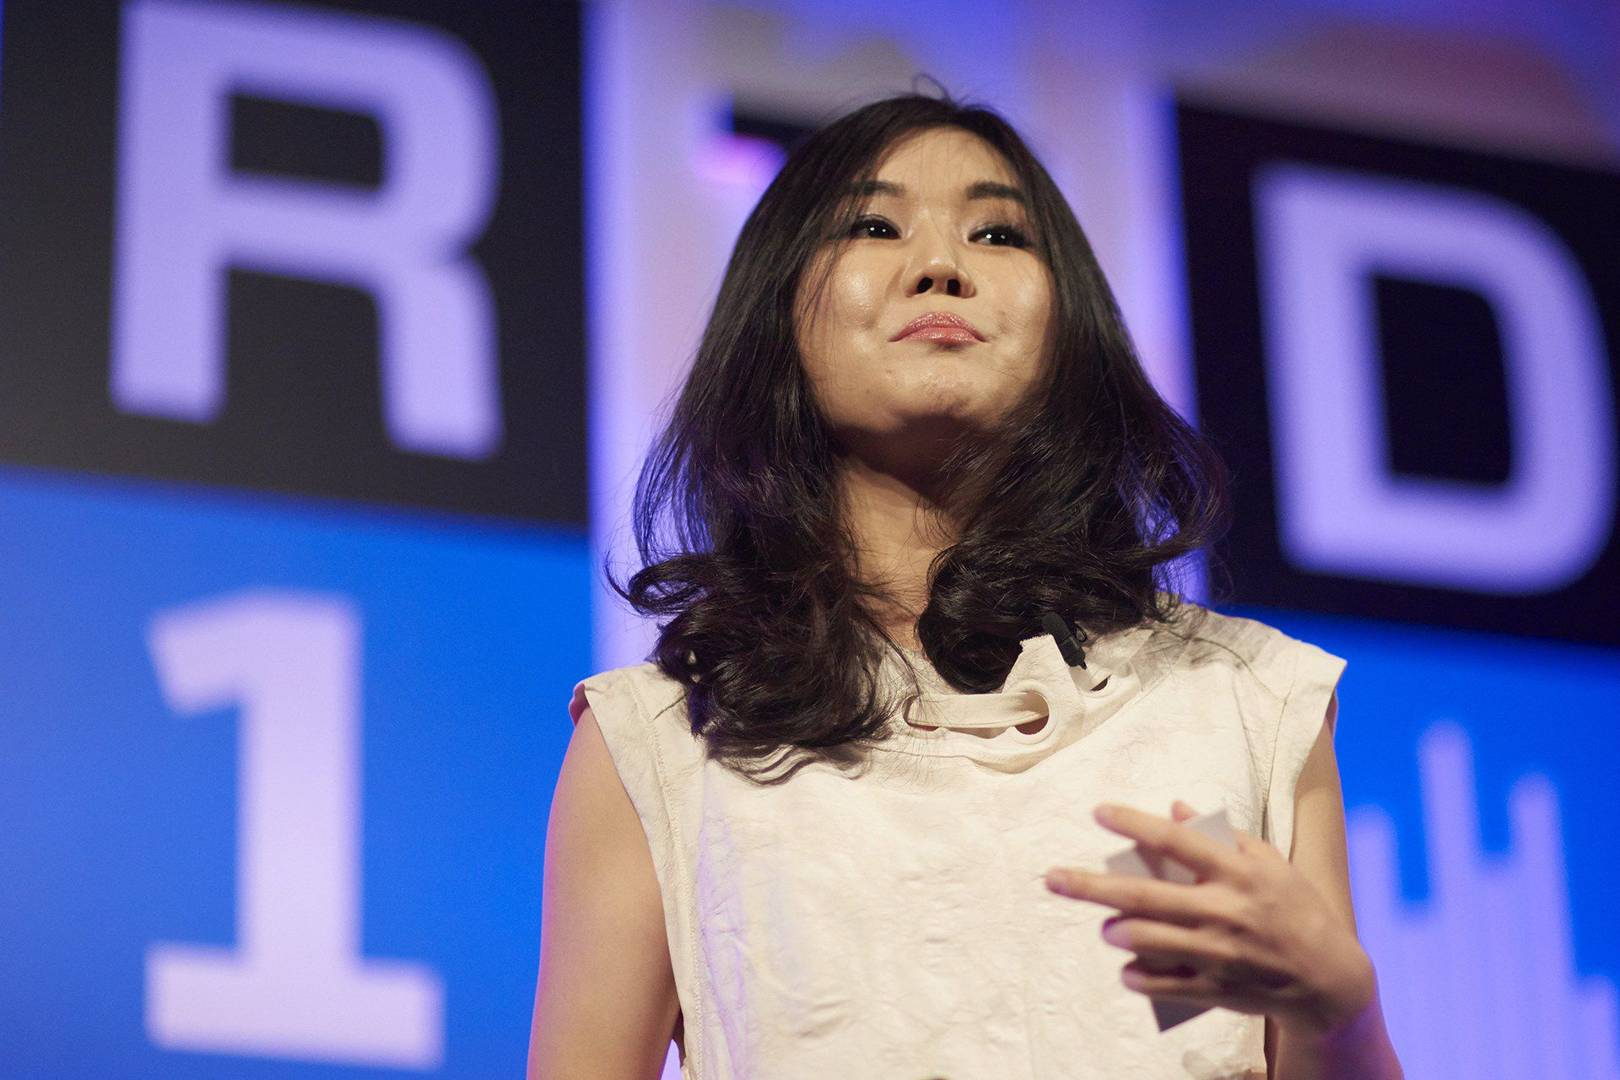 North Korean Defector Hyeonseo Lee We Are Living An Orwellian